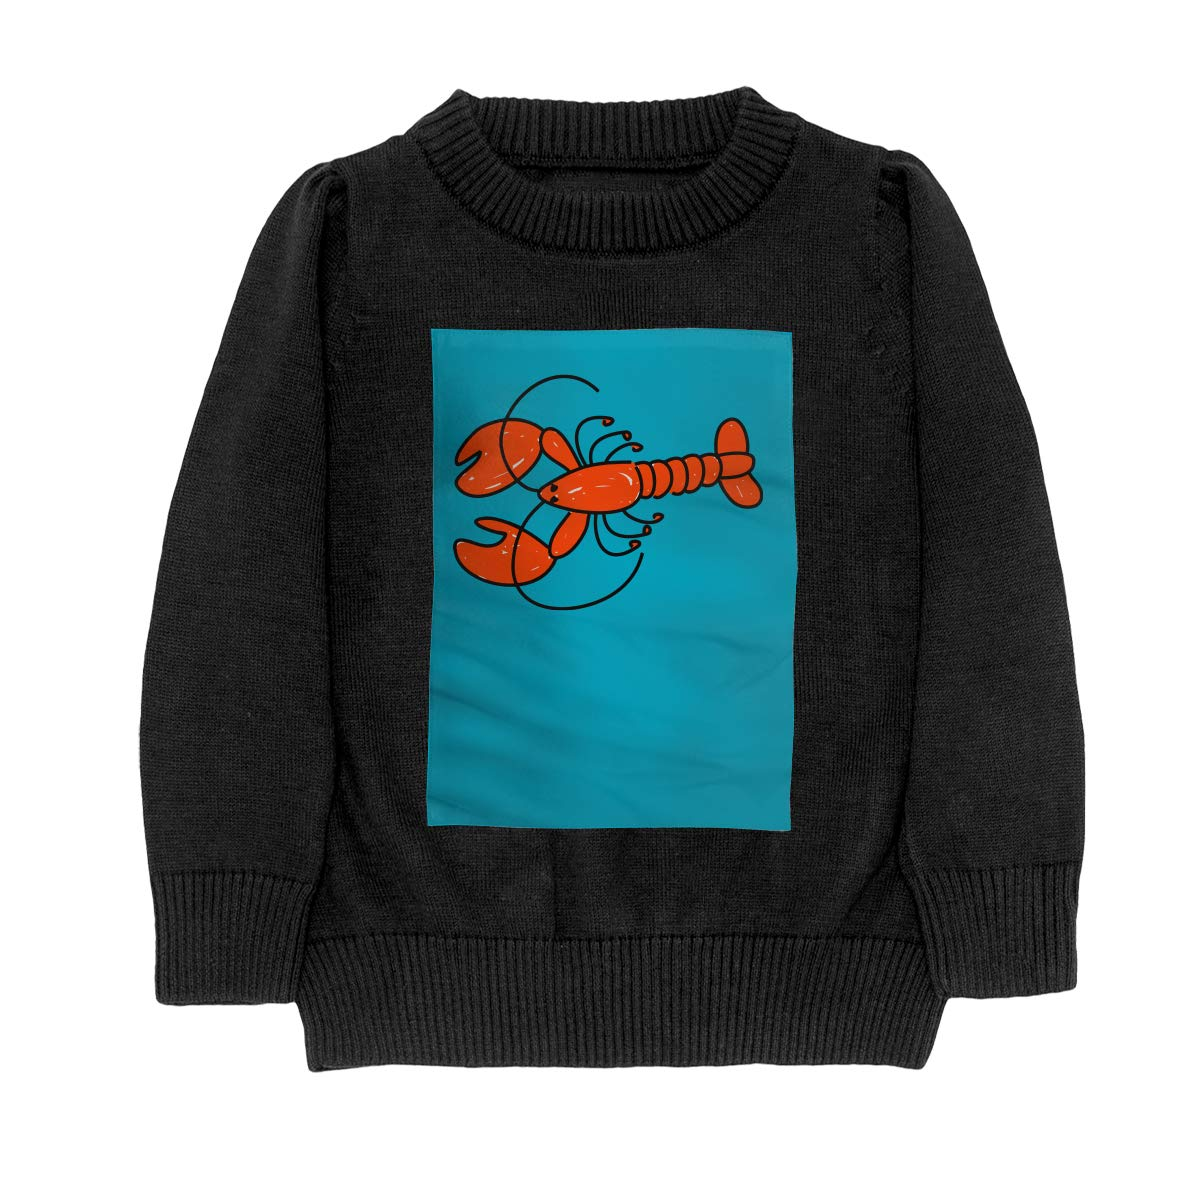 WWTBBJ-B A Lobster Style Teenager Boys Girls Unisex Sweater Keep Warm